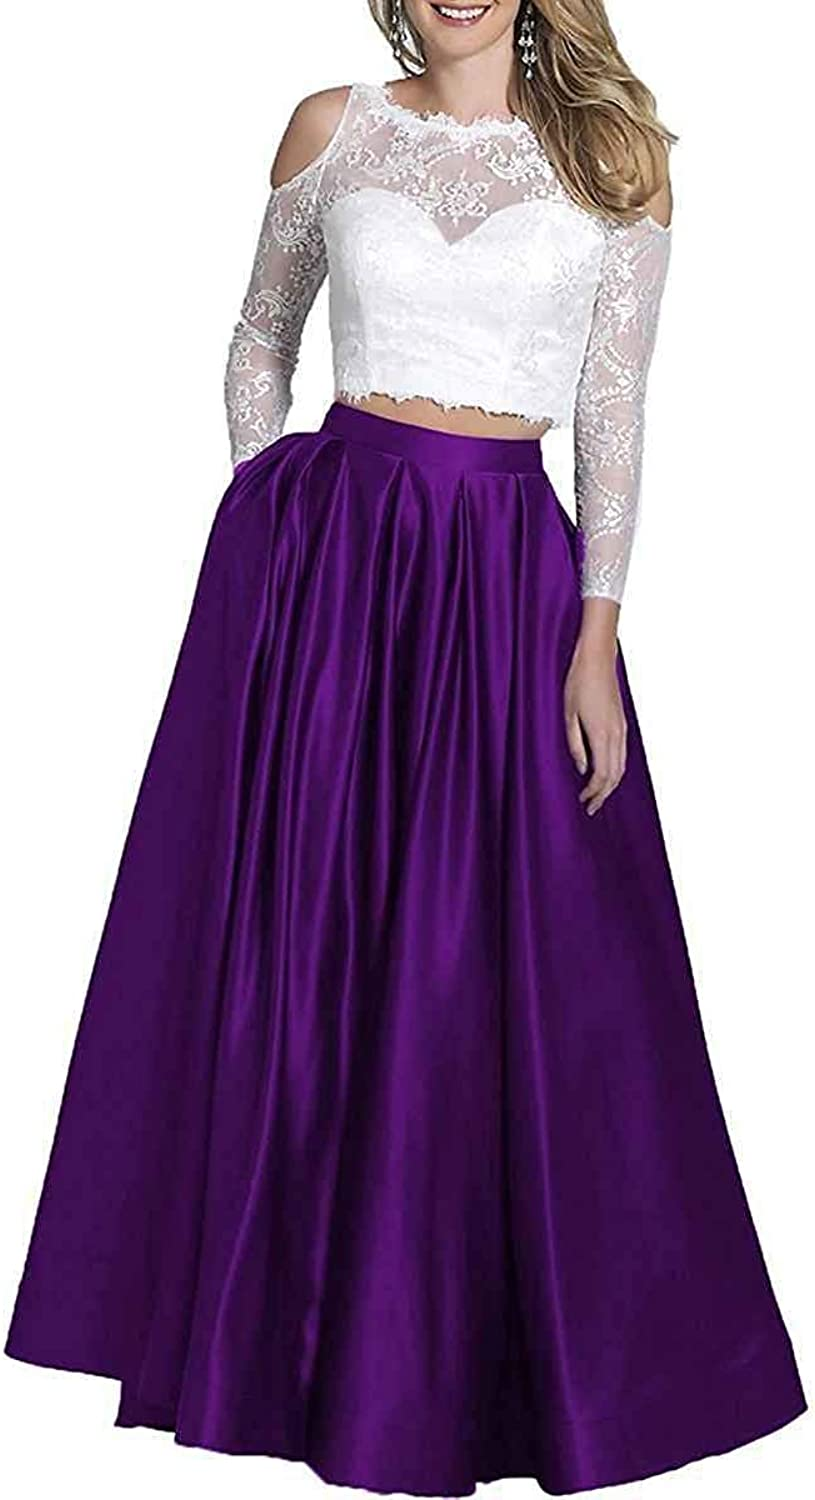 CCBubble Womens Two Piece Satin Prom Dresses Long Sleeves Lace Evening Formal Party Ball Gowns with Pockets